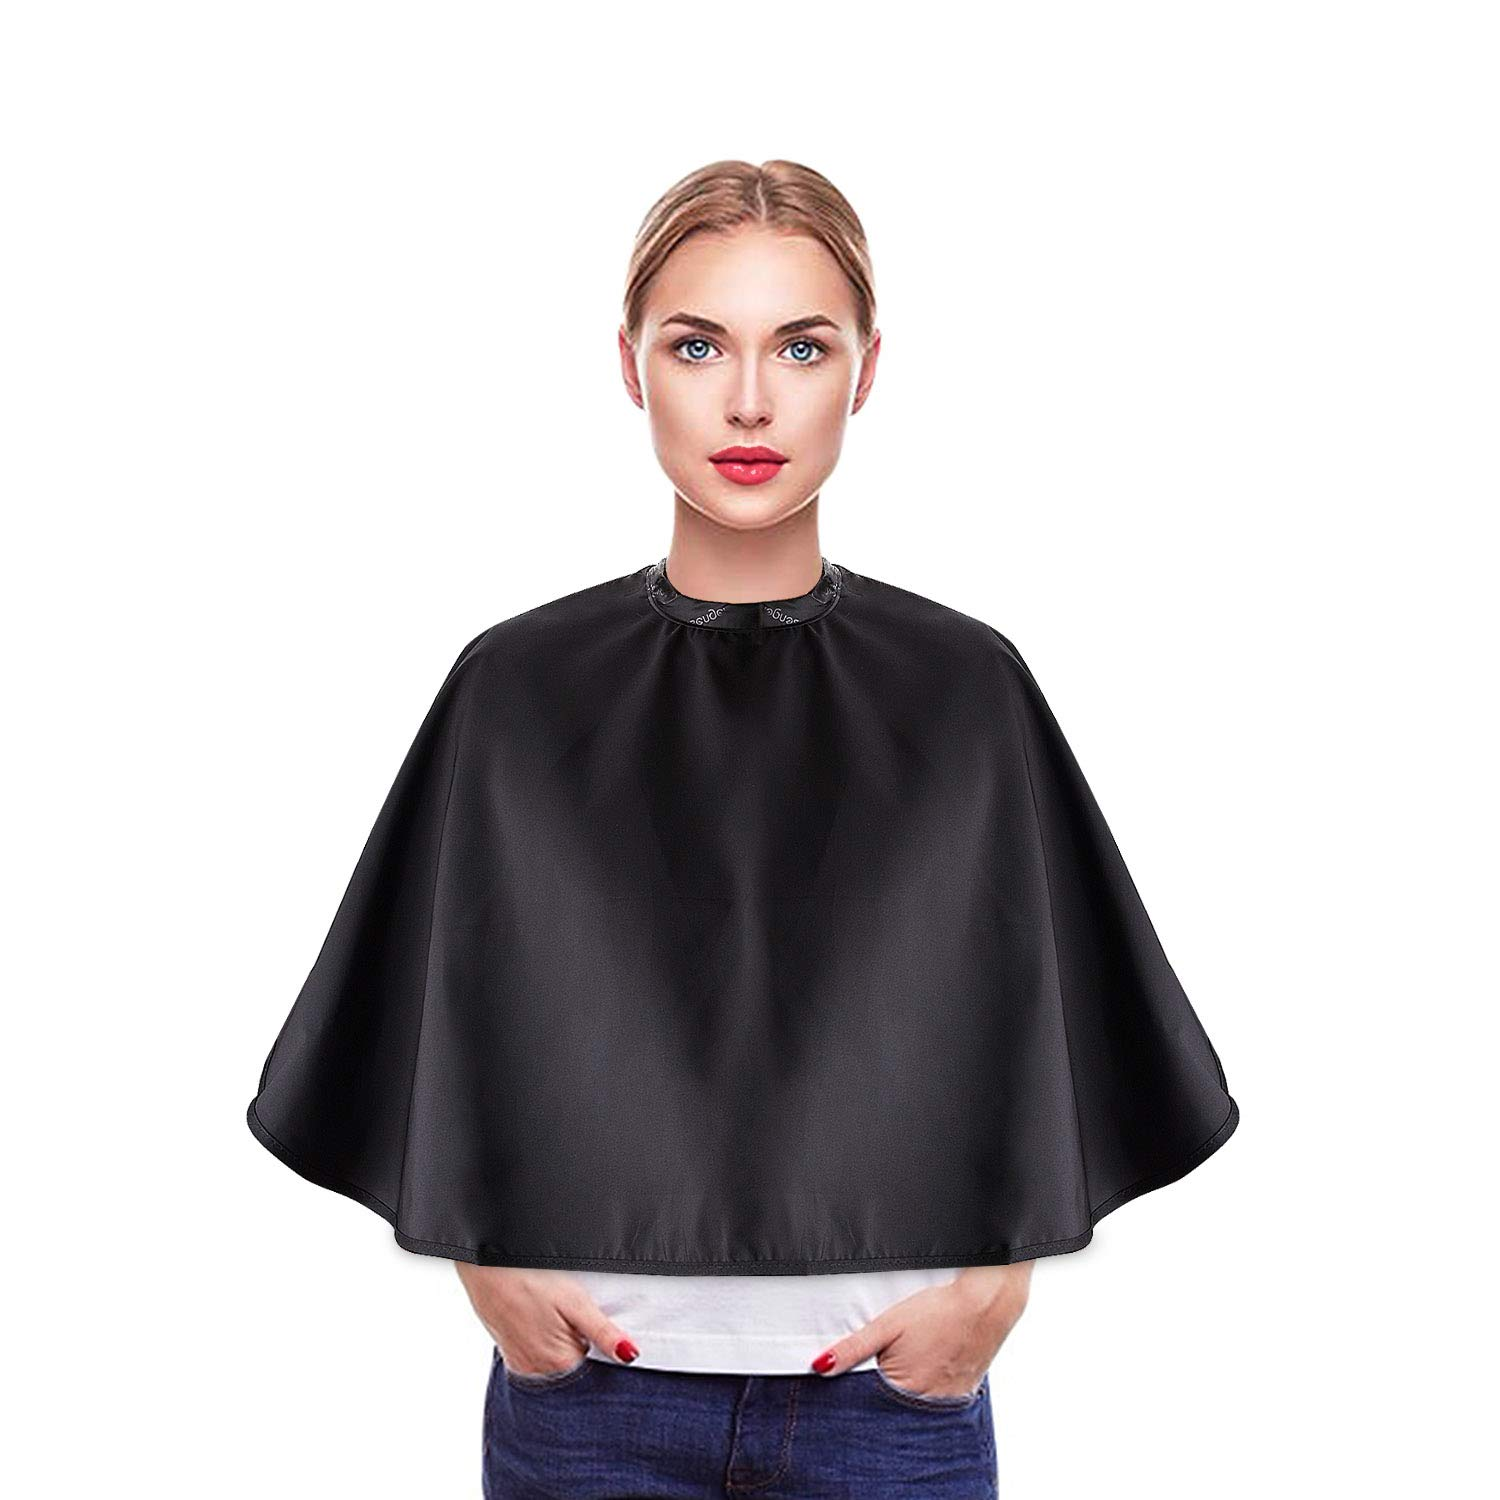 Noverlife Black Makeup Cape, Chemical & Water Proof Beauty Salon Shorty Smock for Clients, Lightweight Comb-out Beard Apron Shortie Makeup Bib Styling Shampoo Cape for Makeup Artist Beautician